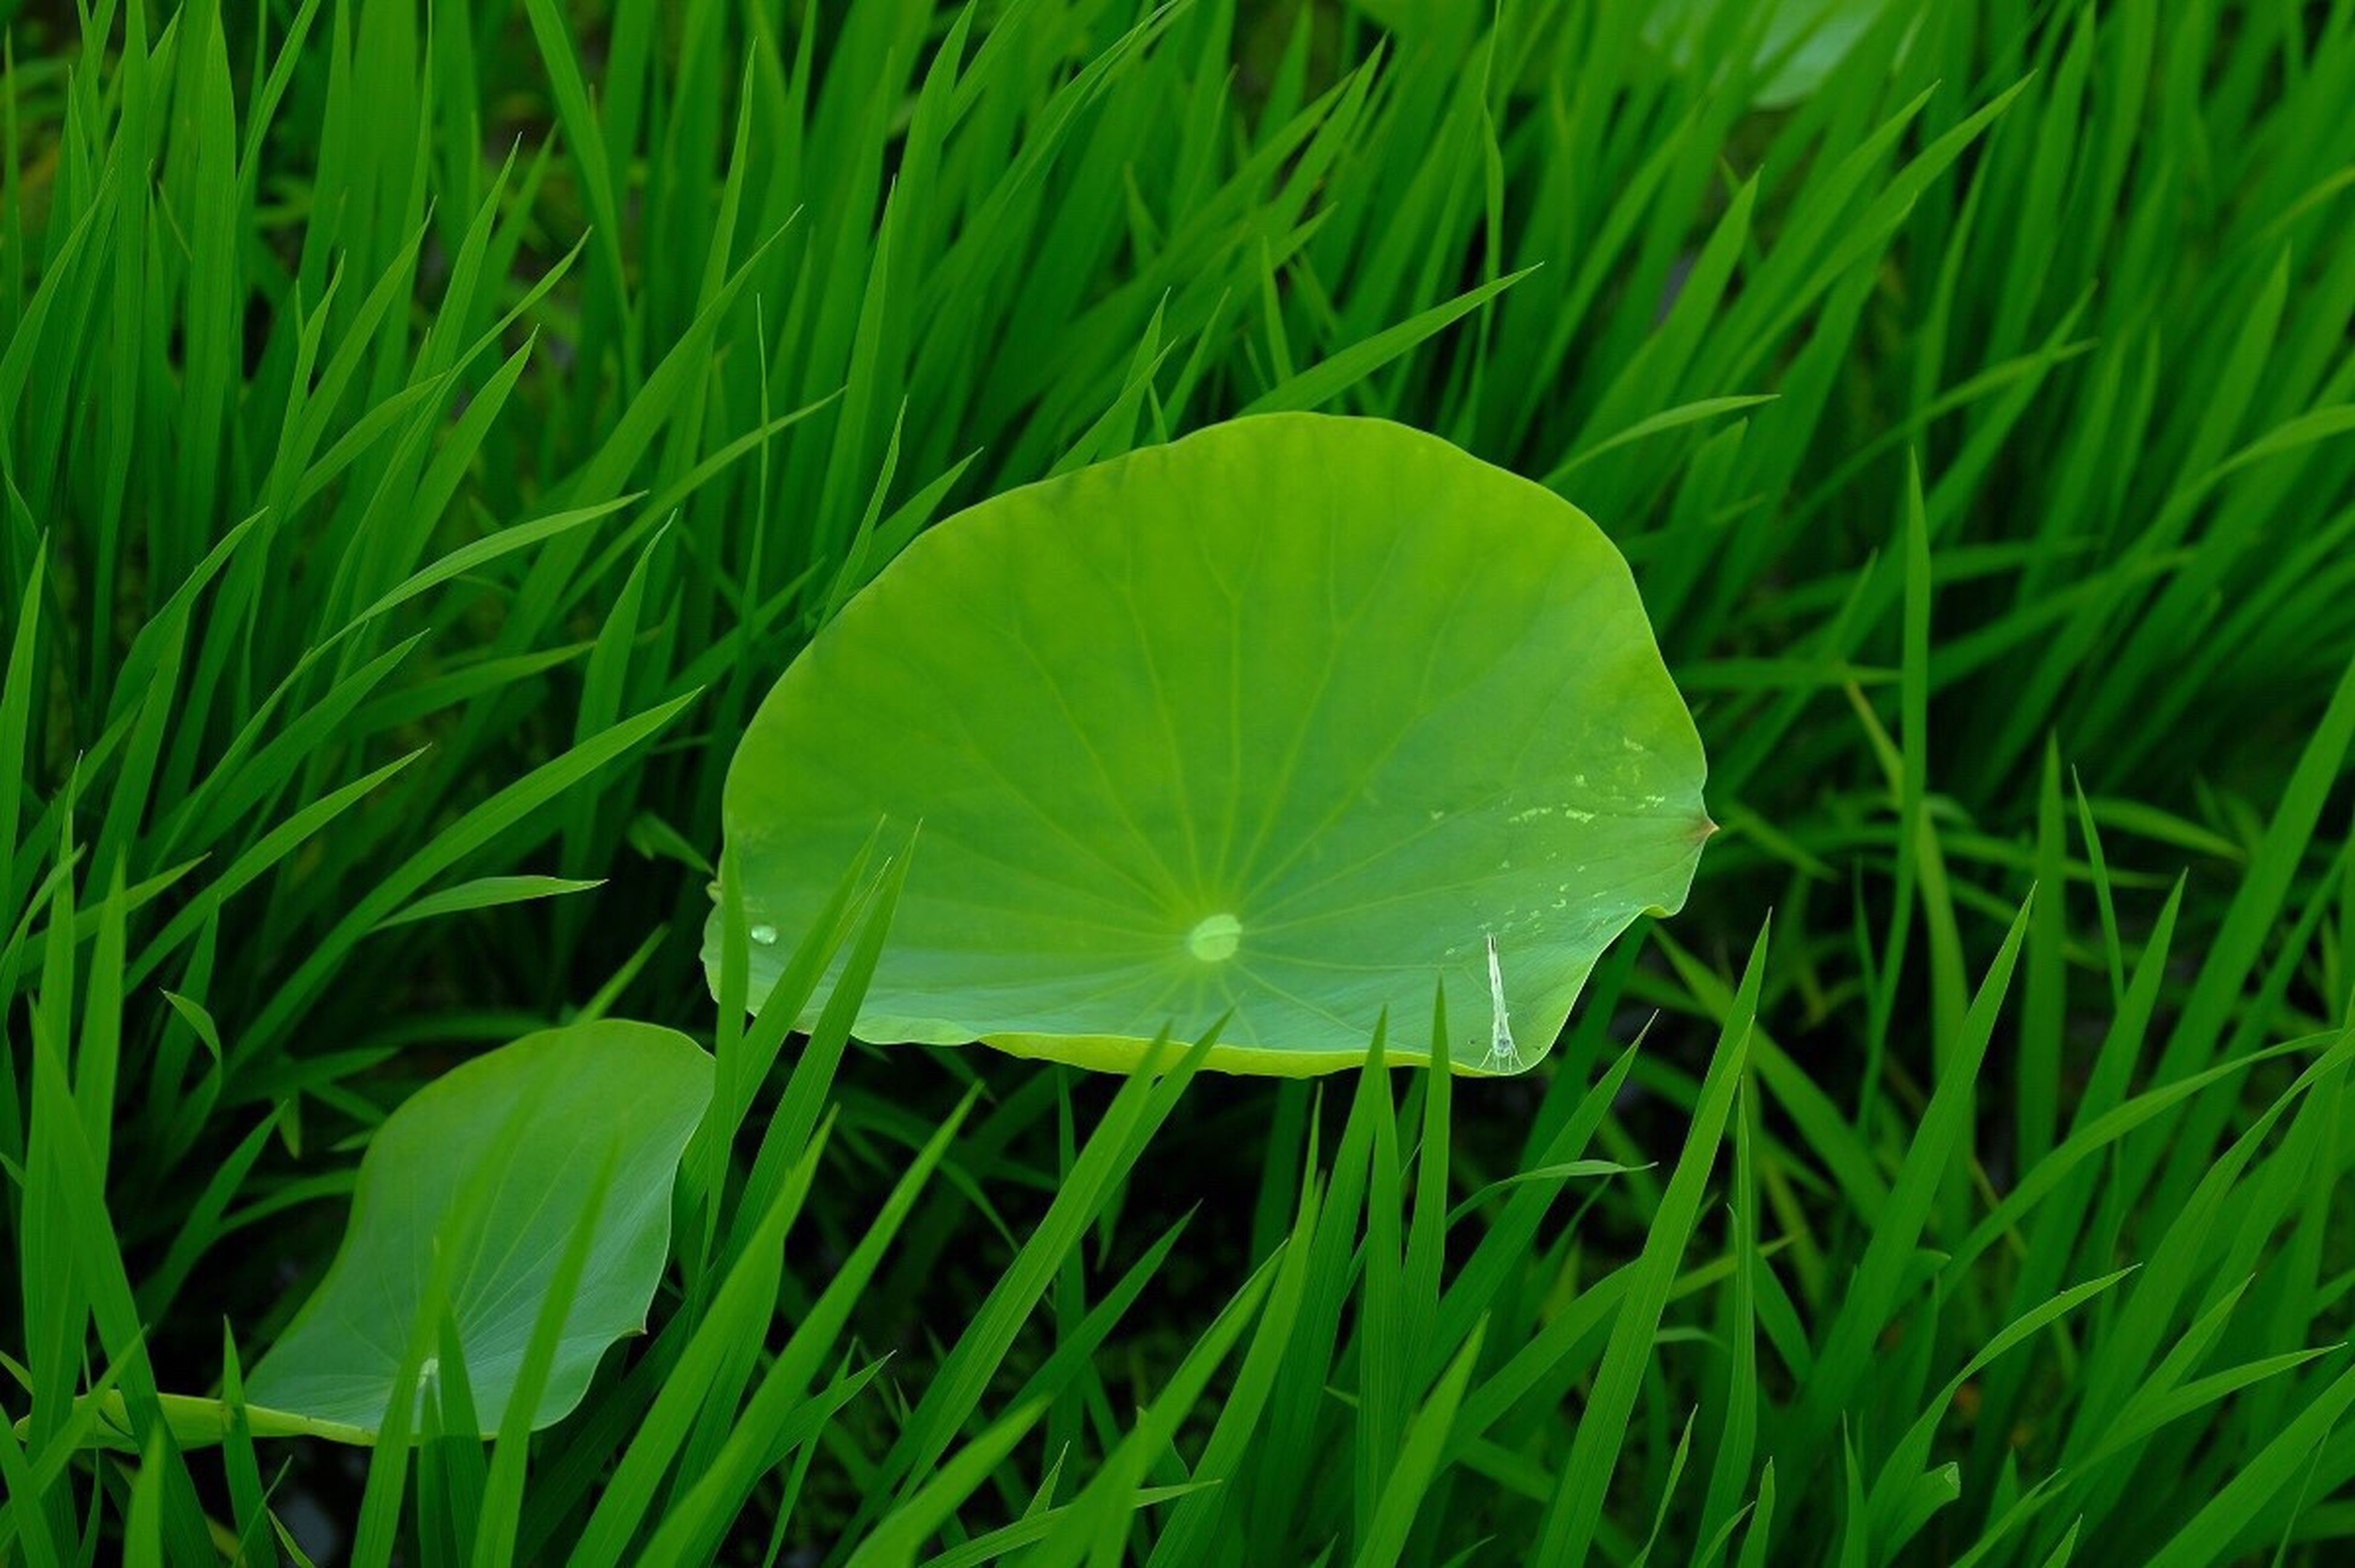 grass, green color, growth, water, nature, leaf, plant, beauty in nature, blade of grass, freshness, field, close-up, tranquility, dew, green, outdoors, no people, day, grassy, fragility, selective focus, lush foliage, growing, focus on foreground, tranquil scene, backgrounds, scenics